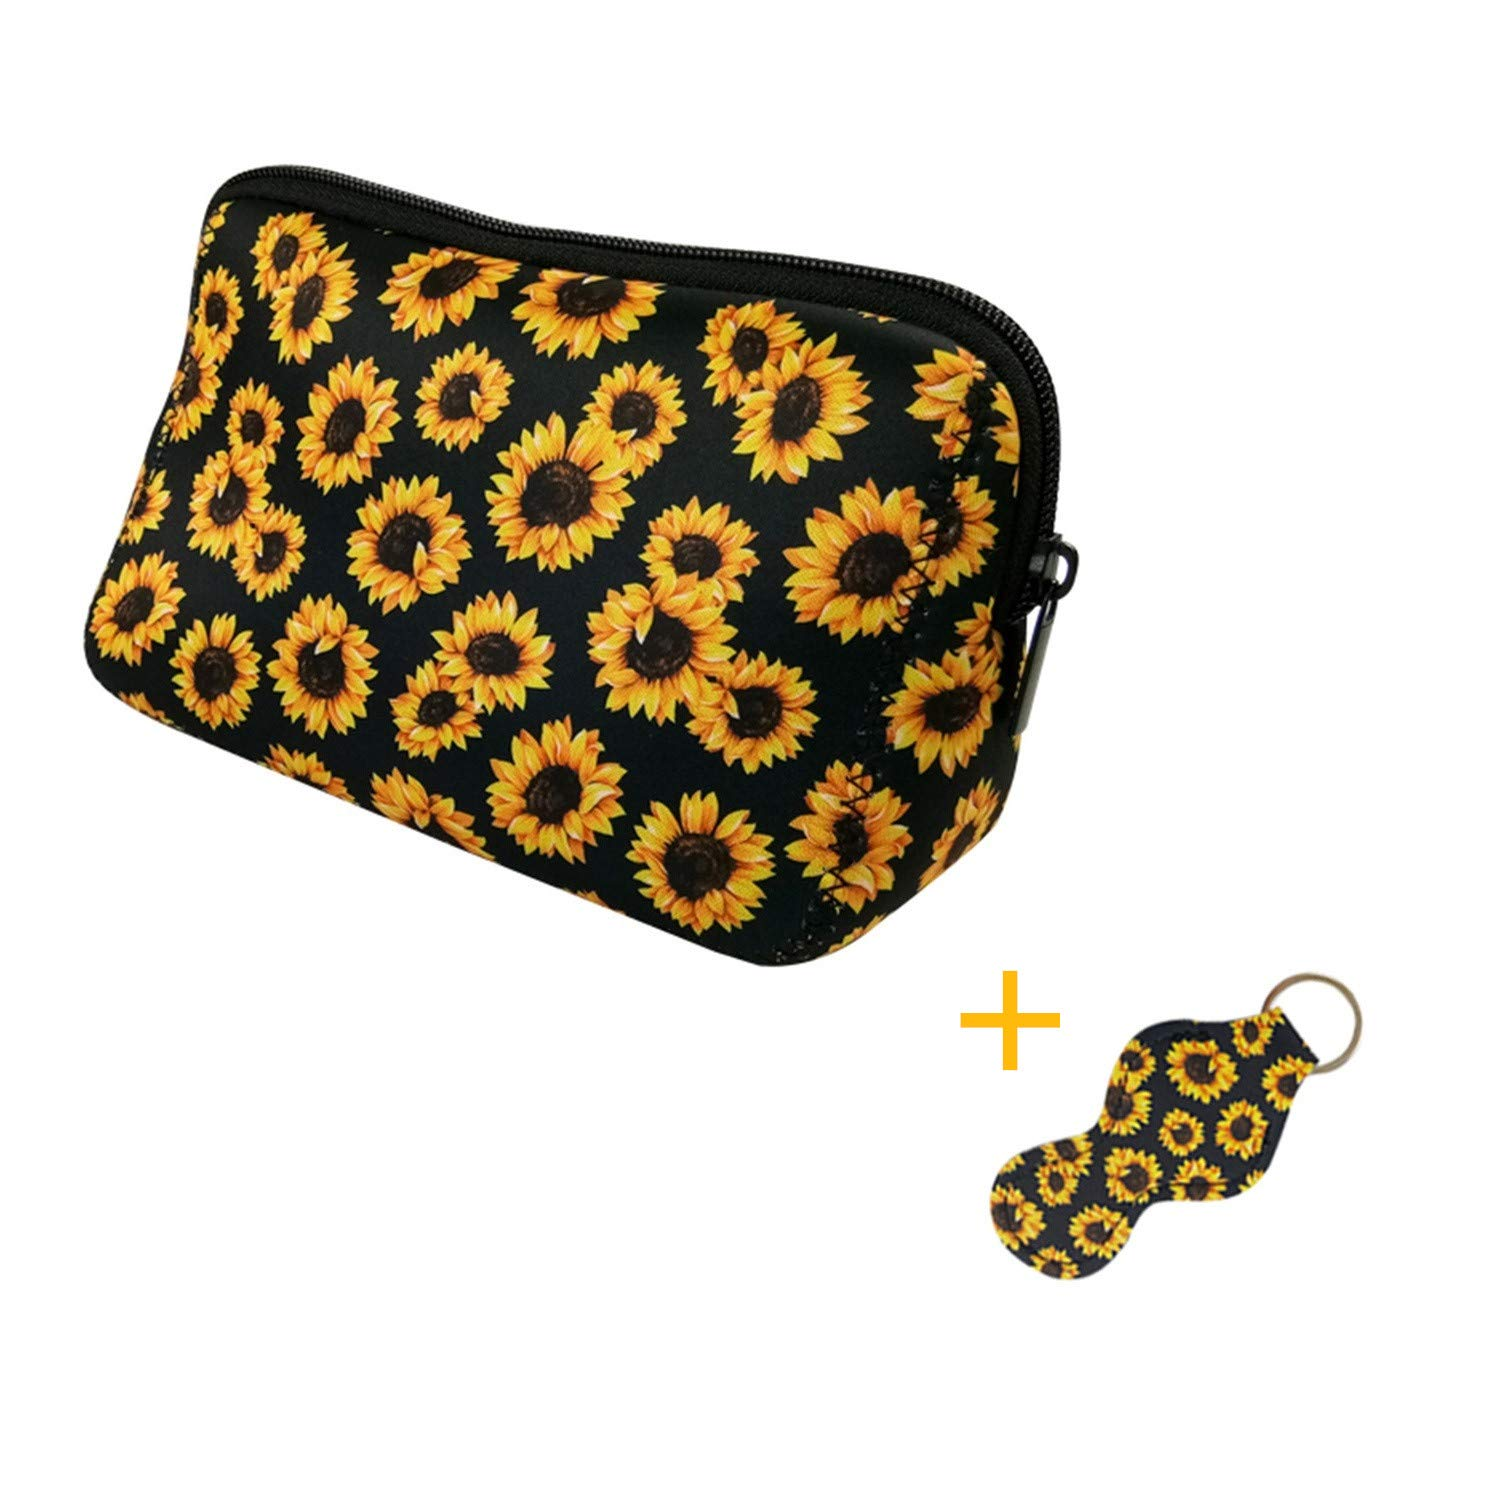 Sunflower Cosmetic Bag Large Waterproof Soft Neoprene Zipper Travel Portable Toiletry Makeup Organizer Case With Lip Balm Chapstick Holder Keychain